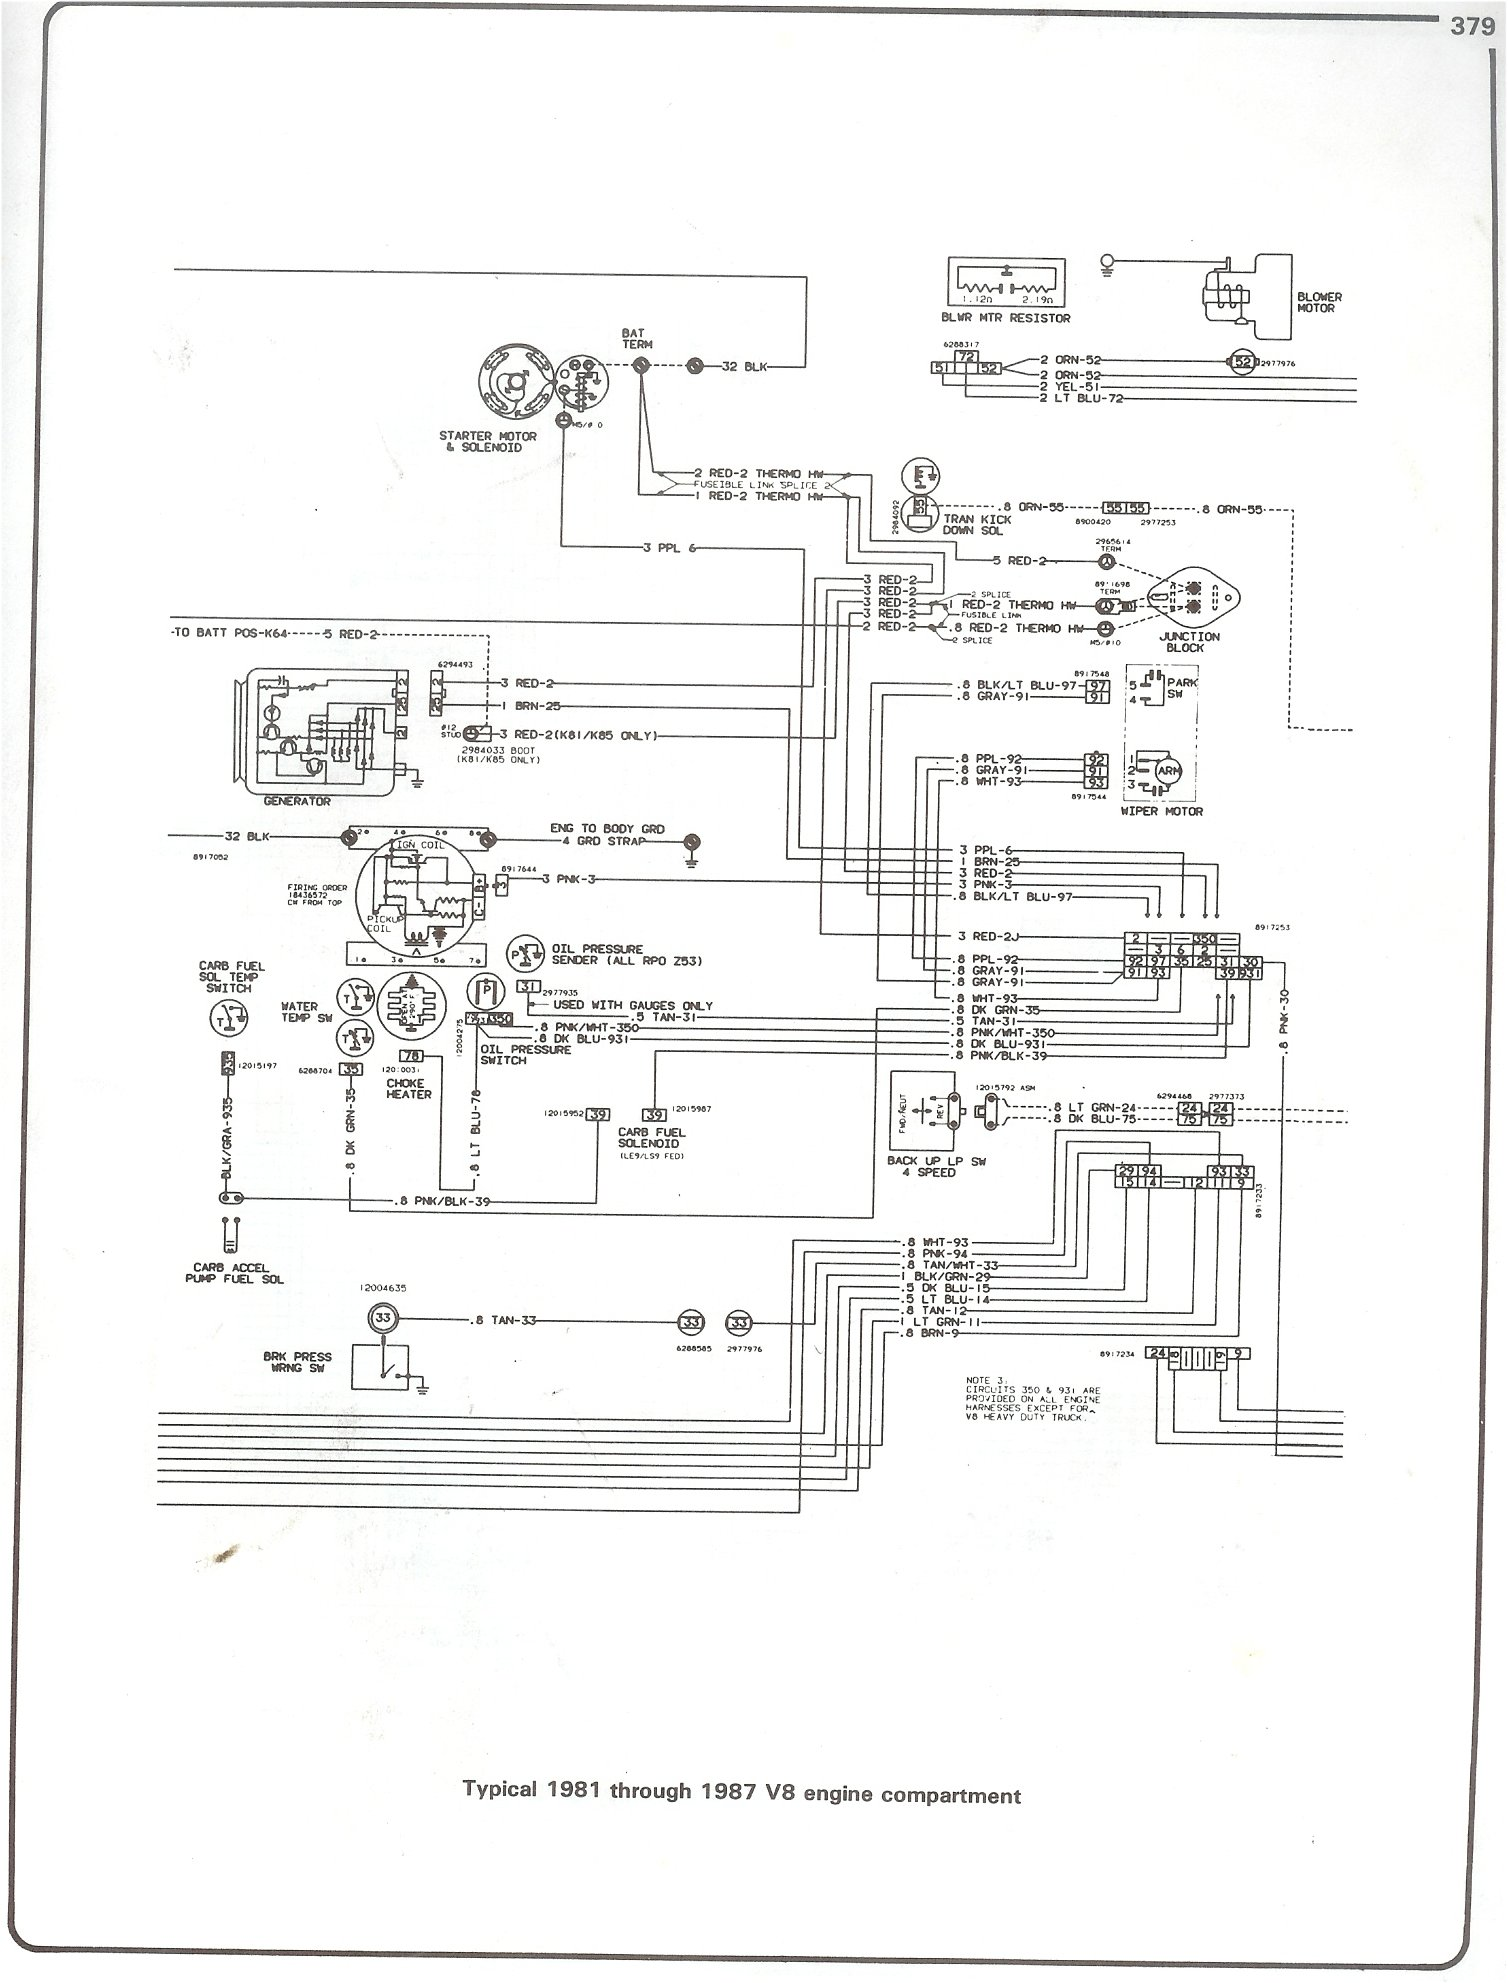 81 87_V8_engine 73 chevy truck wiring diagrams gm painless wiring diagram 73 chevy 87 chevy truck wiring diagram at creativeand.co